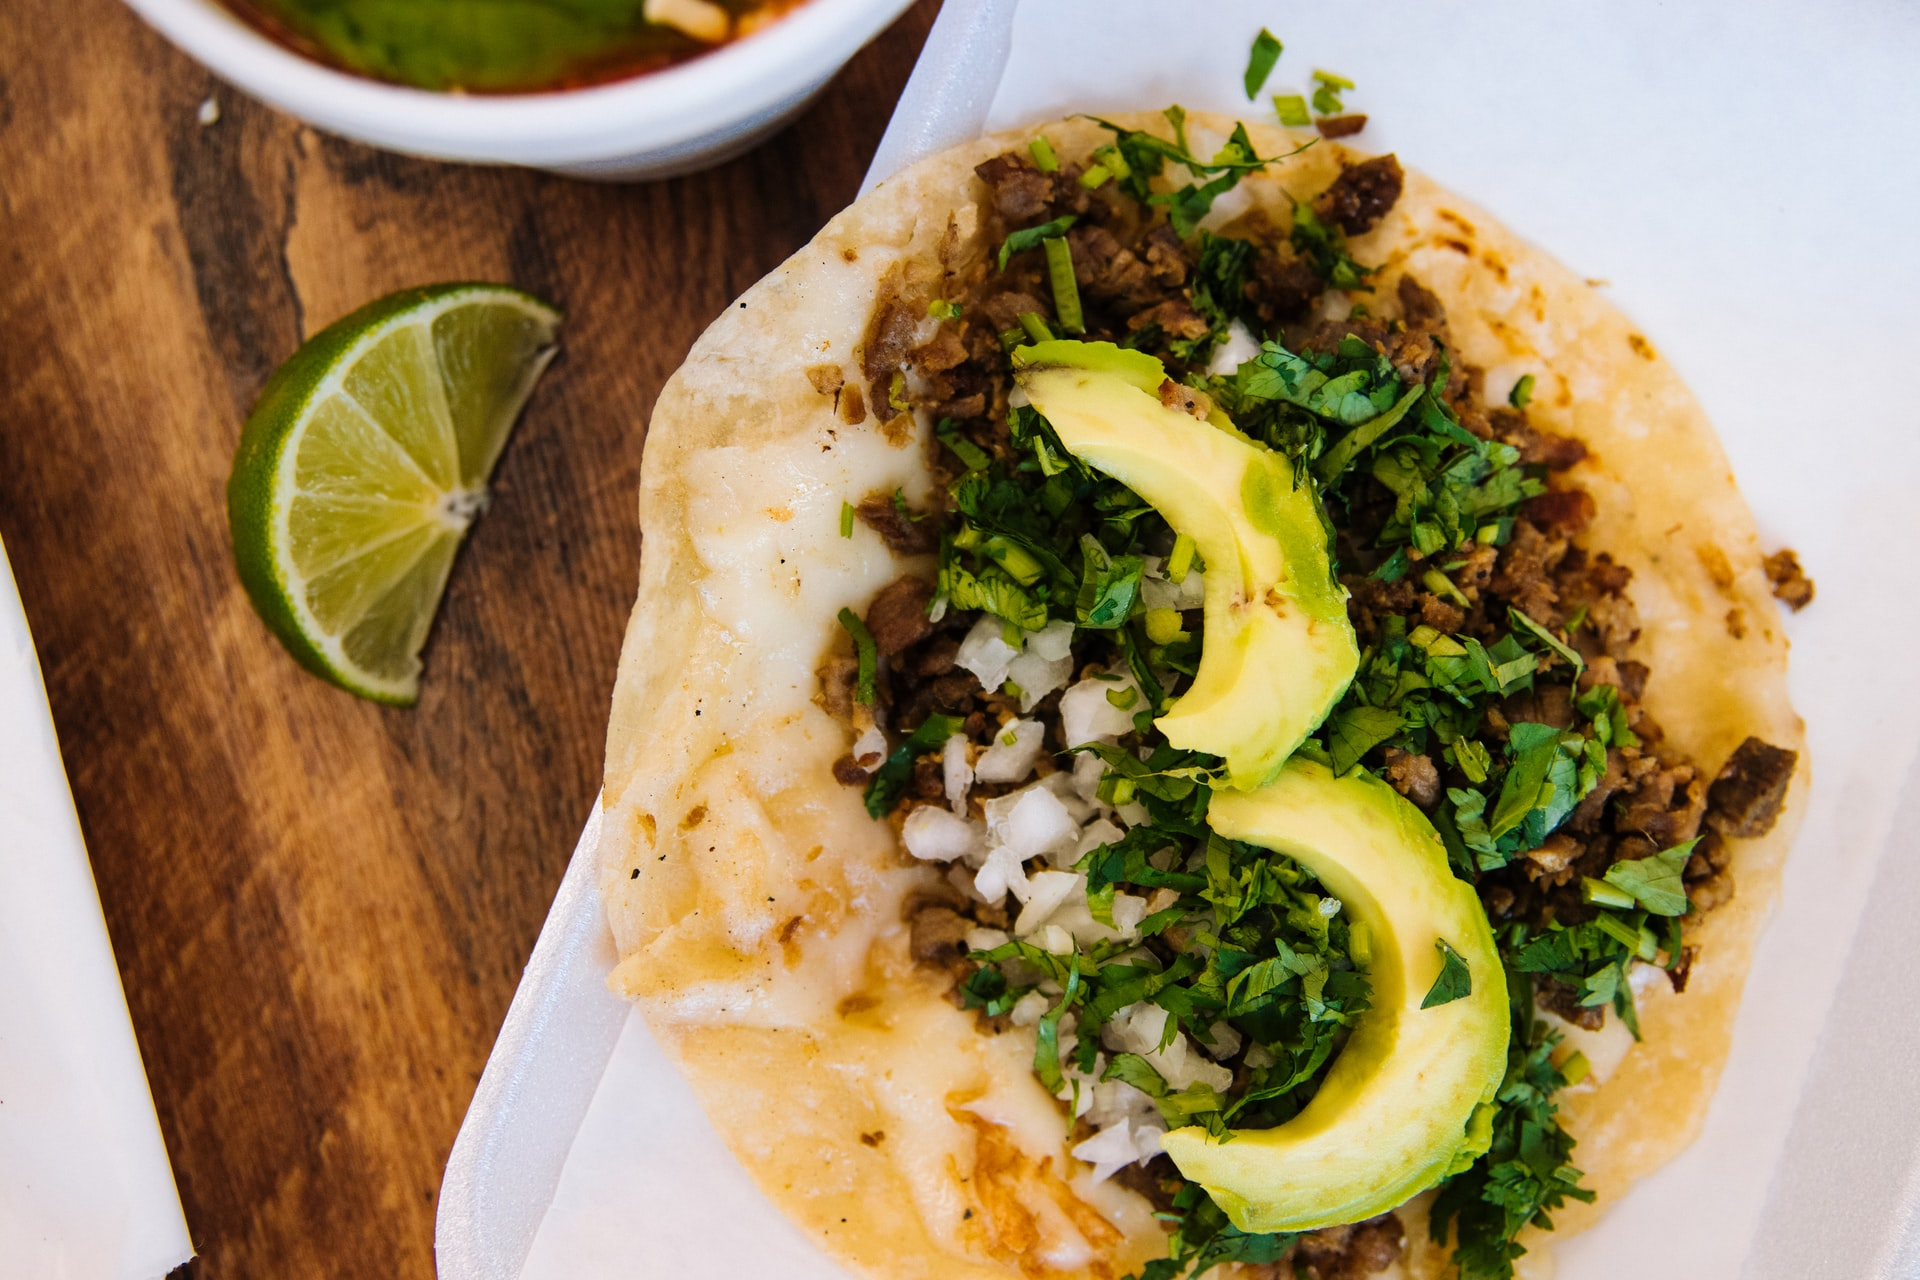 Rebel Taco Cantina: Make Every Day Taco Tuesday in Your Apartment in DC